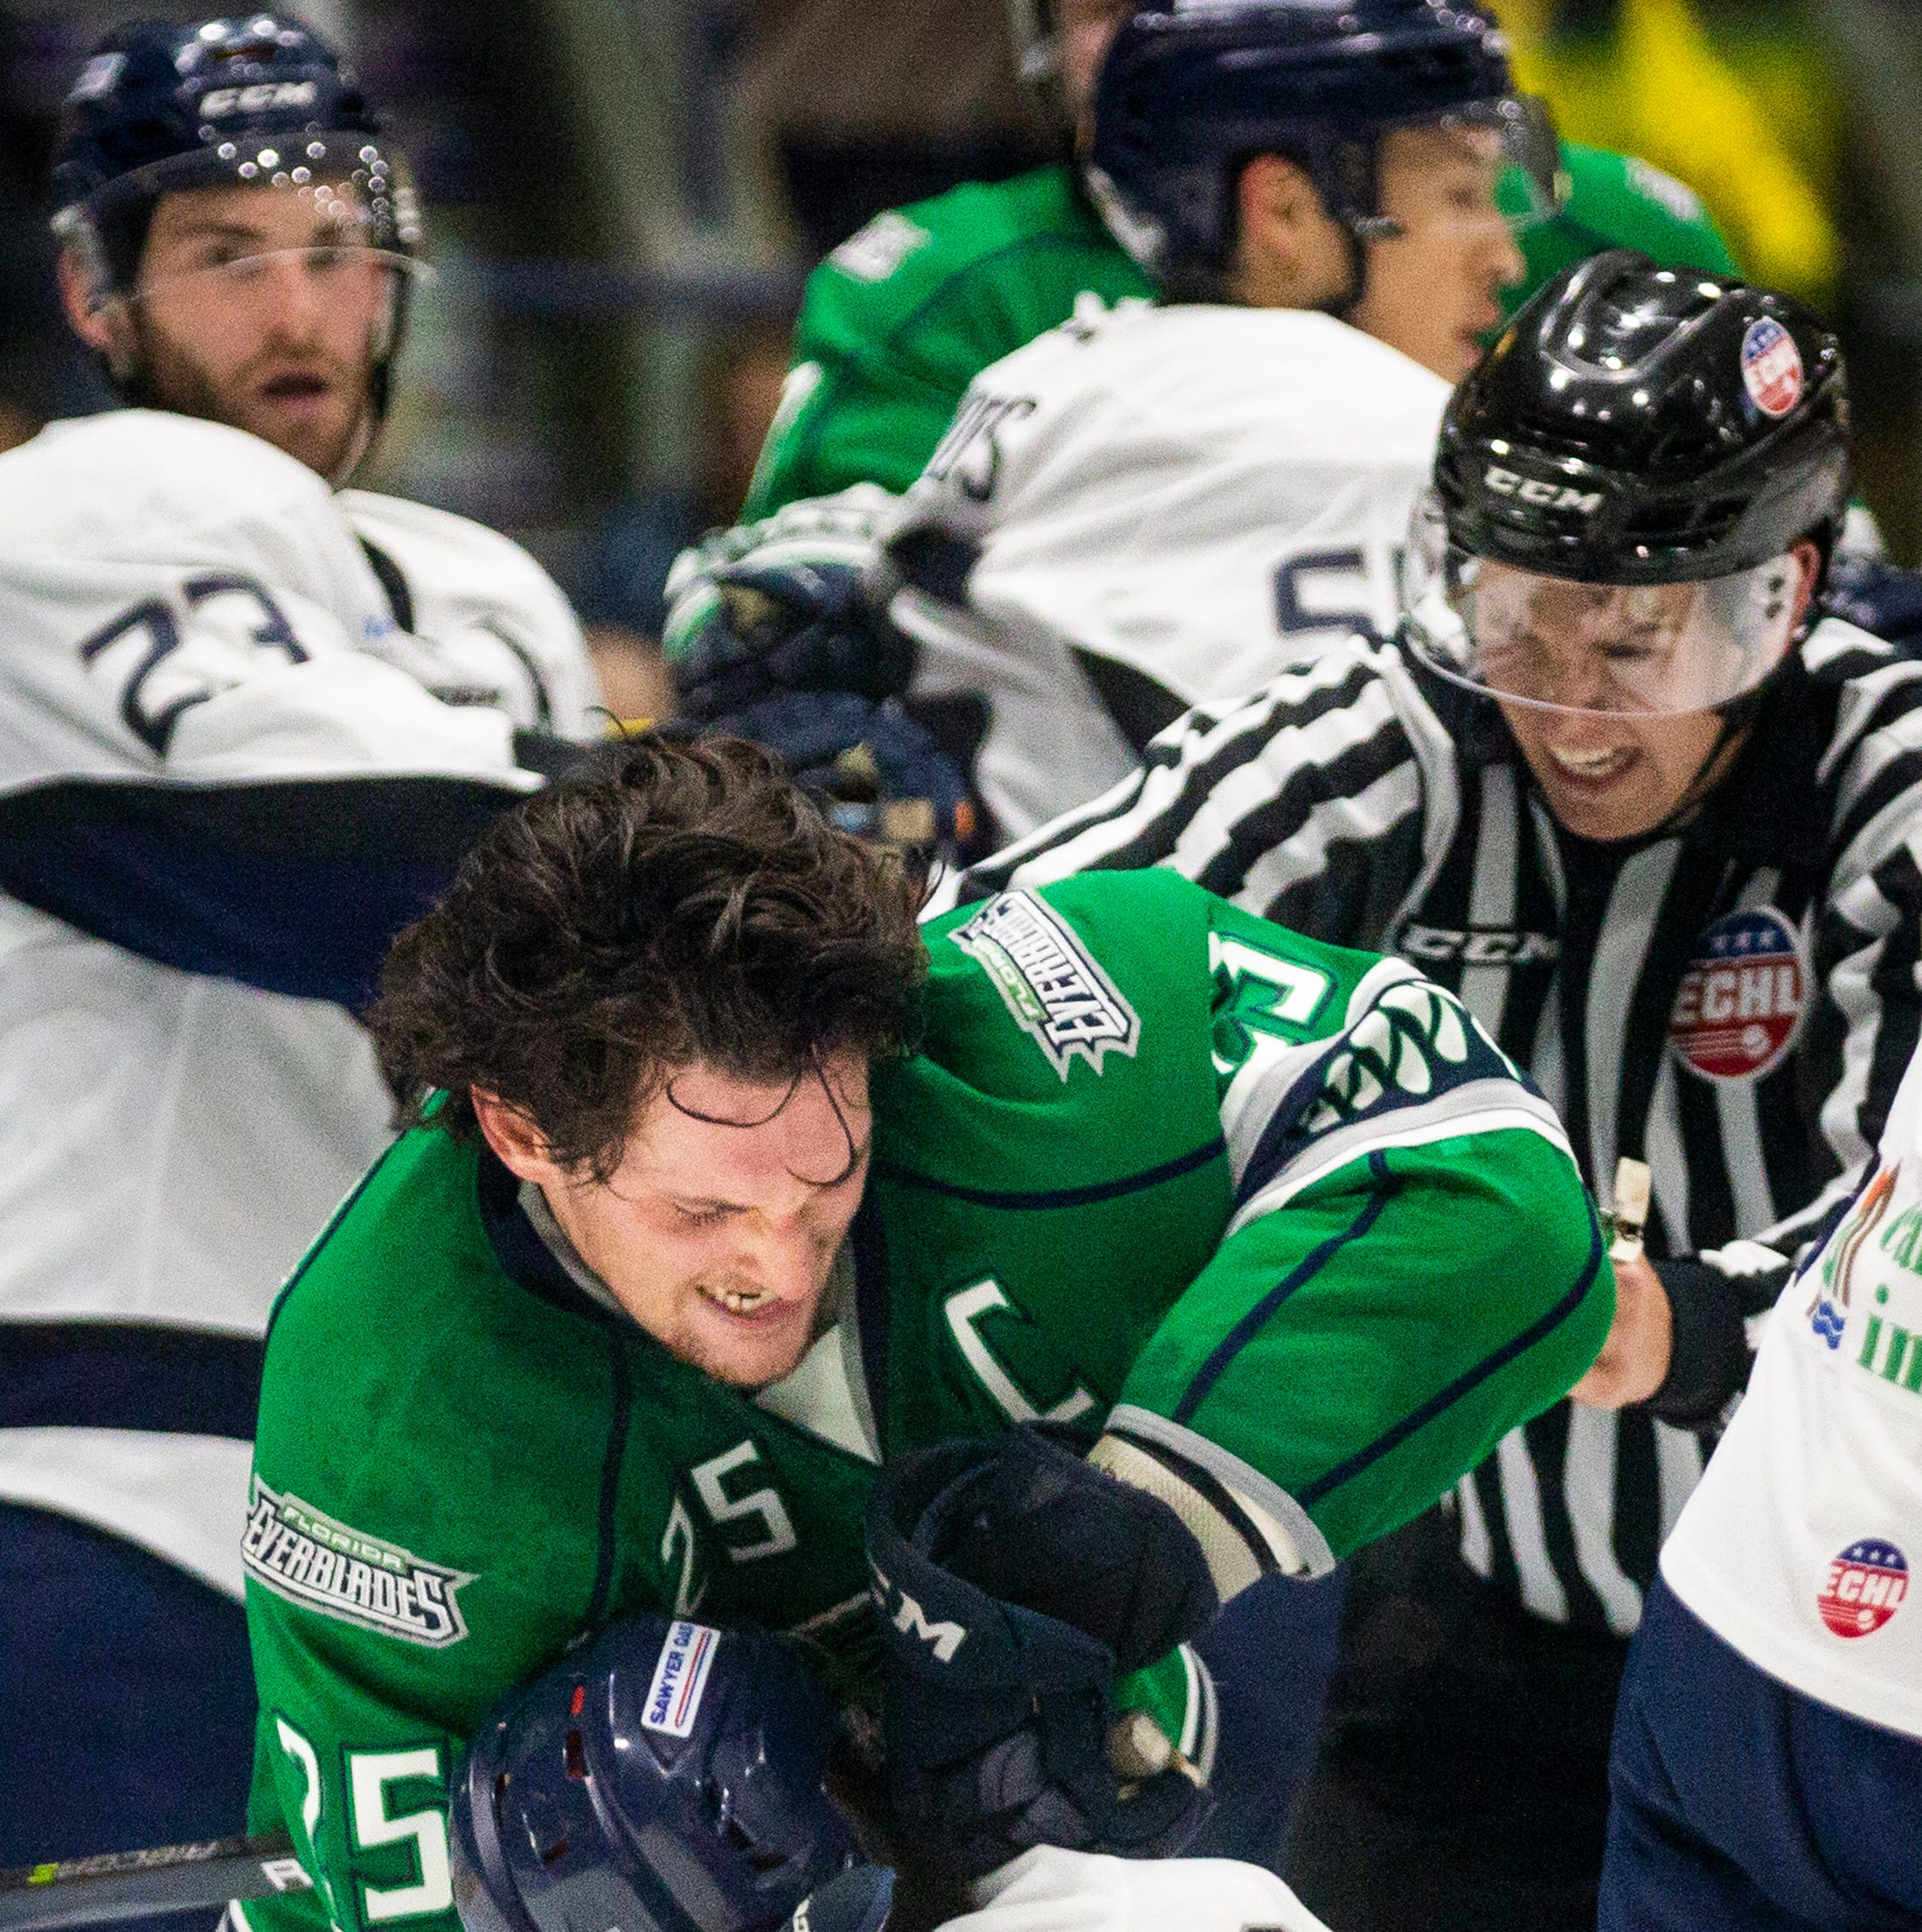 ECHL hockey: Florida Everblades switch NHL affiliation to Nashville Predators